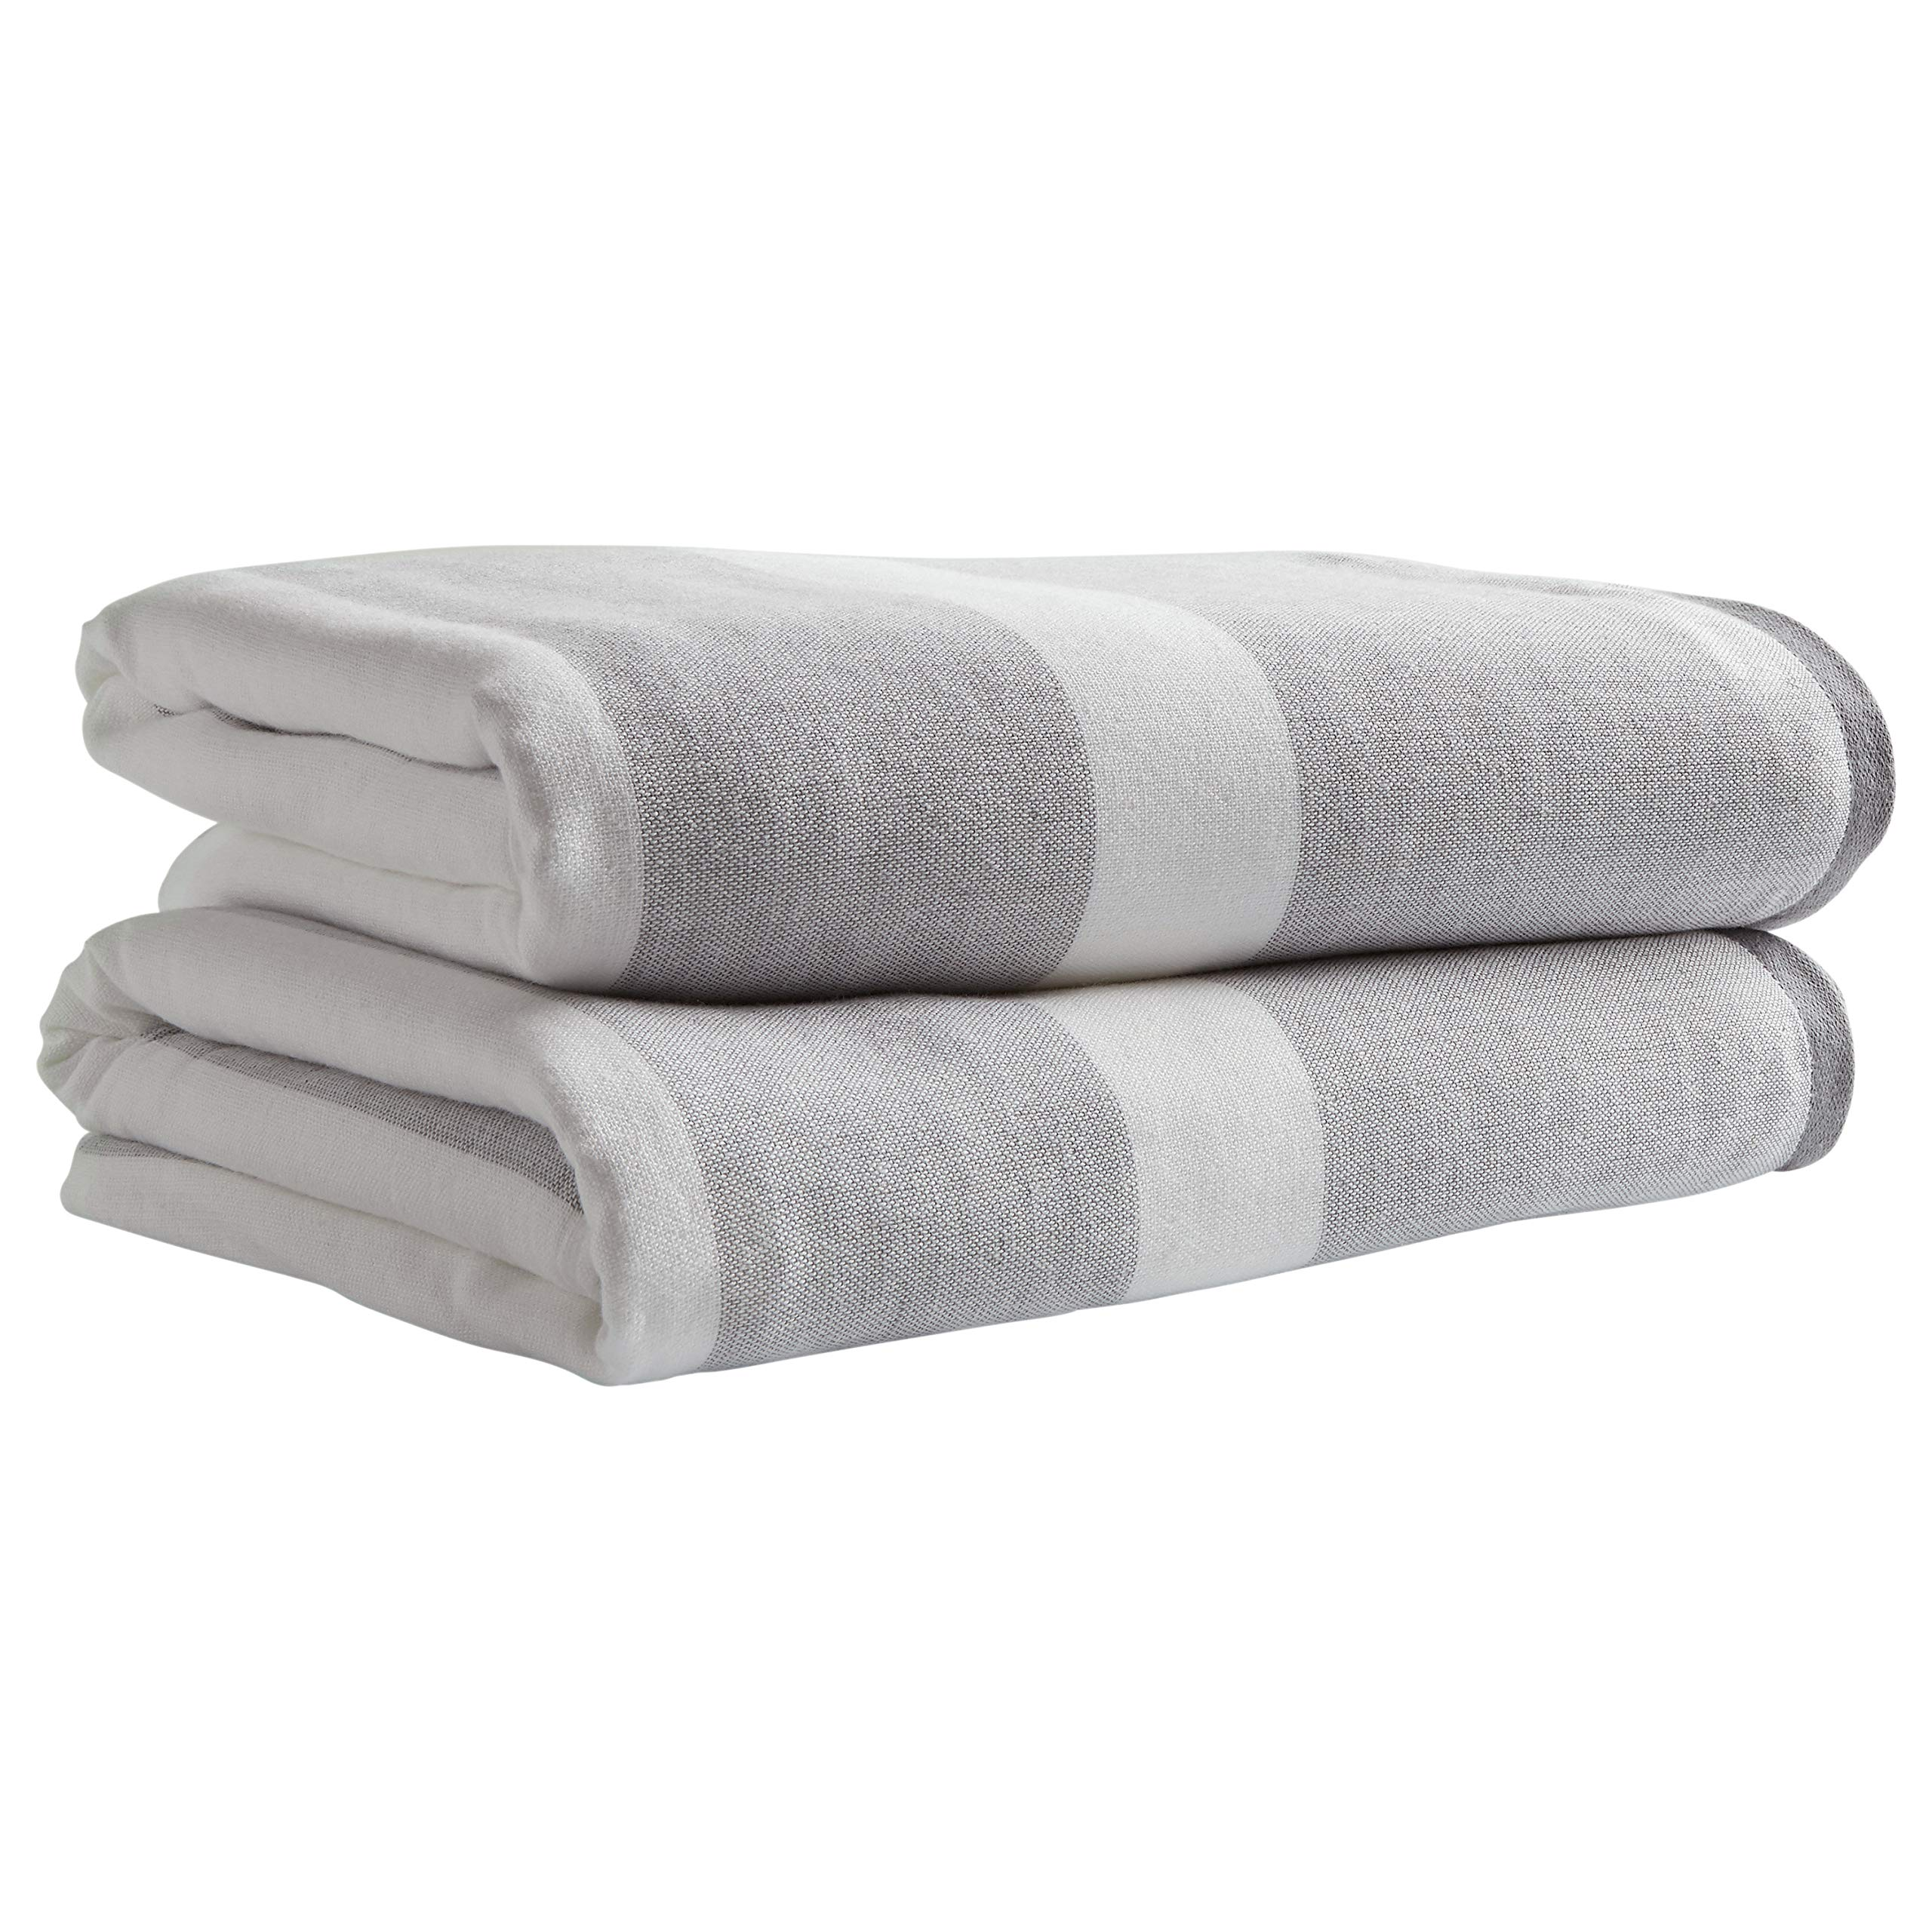 Stone & Beam Casual Striped Cotton Bath Towels, Set of 2, Grey